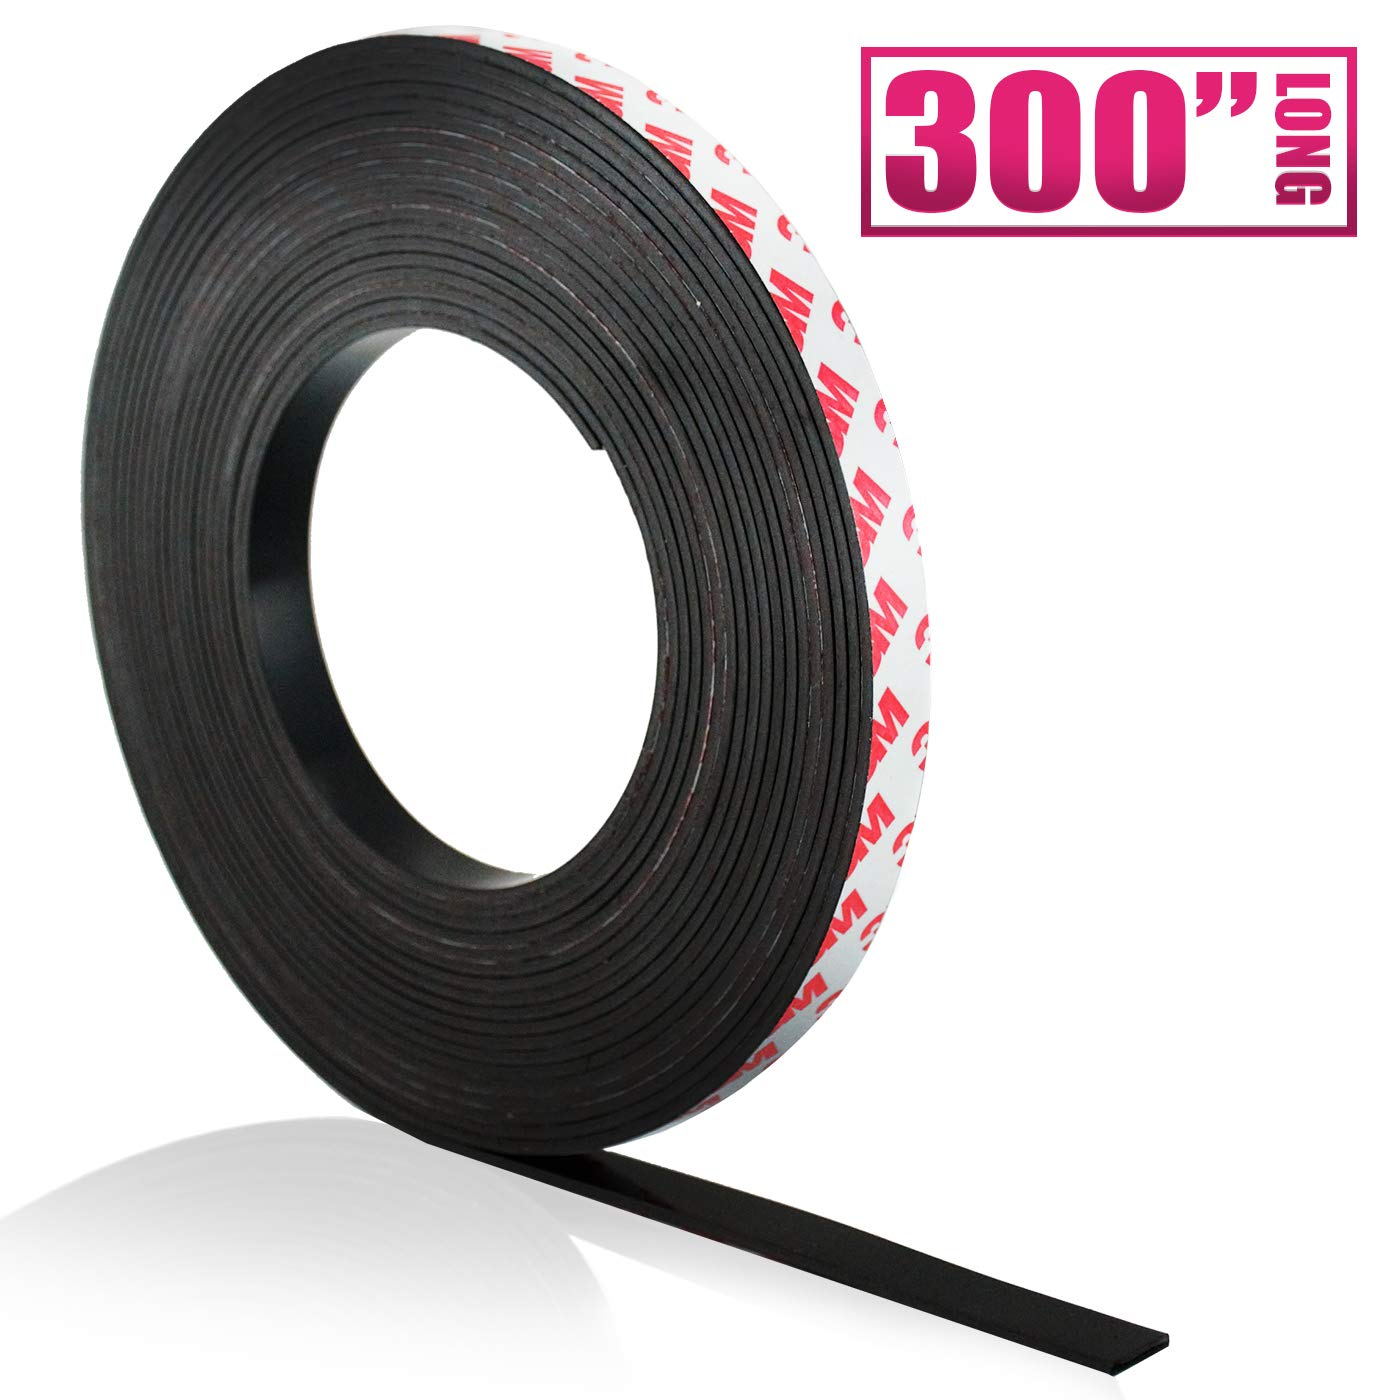 Craftopia Self Adhesive Magnet Strip Cuttable Roll | .5 inch x 300 inch | Sticky Back Magnetic Tape | Strong, Flexible, Easy to Cut Peel and Stick Magnetic | Thick 50 mil | Crafts, Gifts, Office, Home